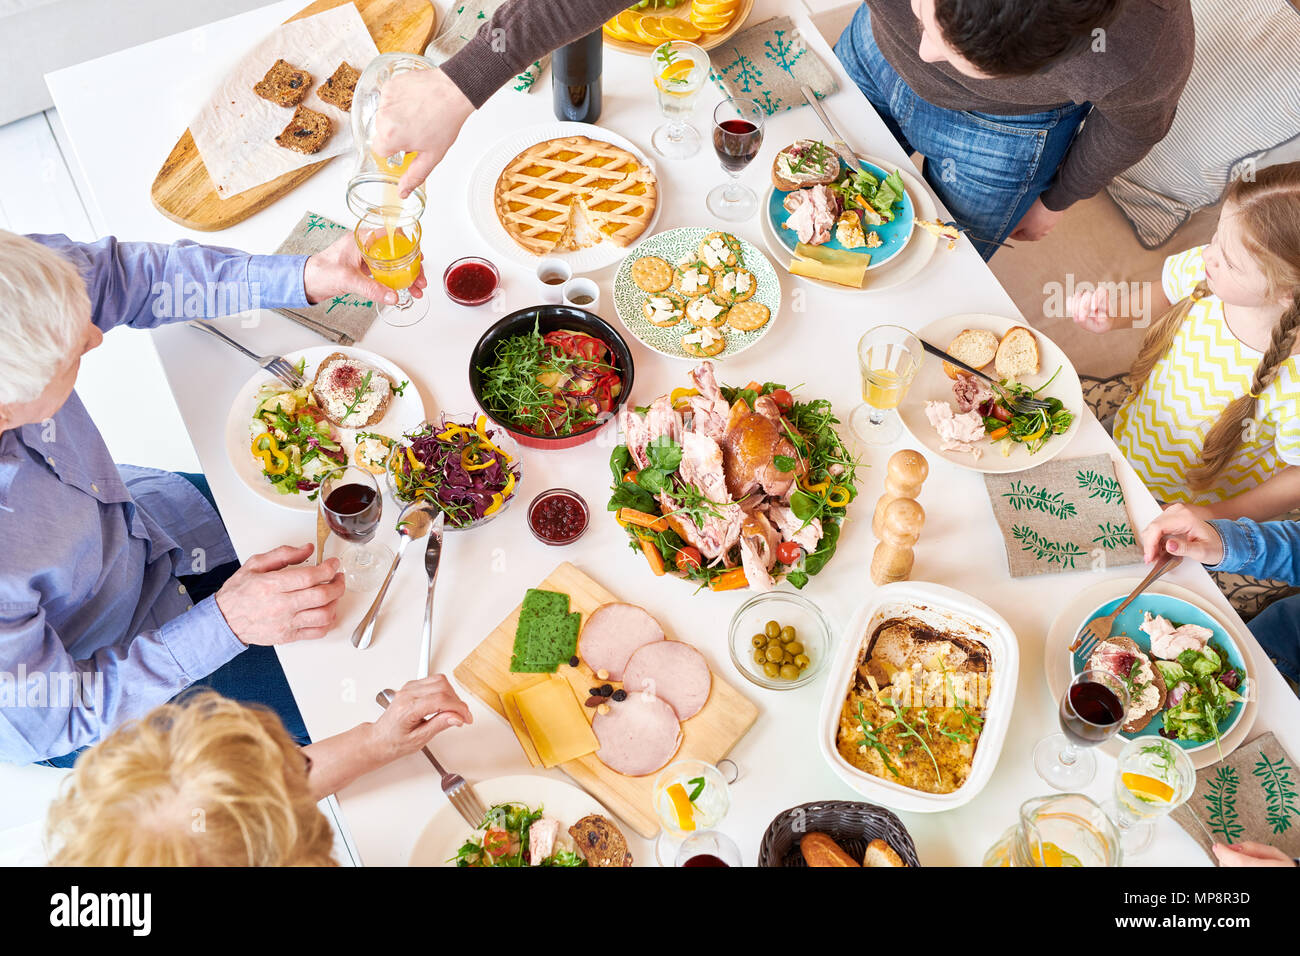 Top View of Family Dinner - Stock Image